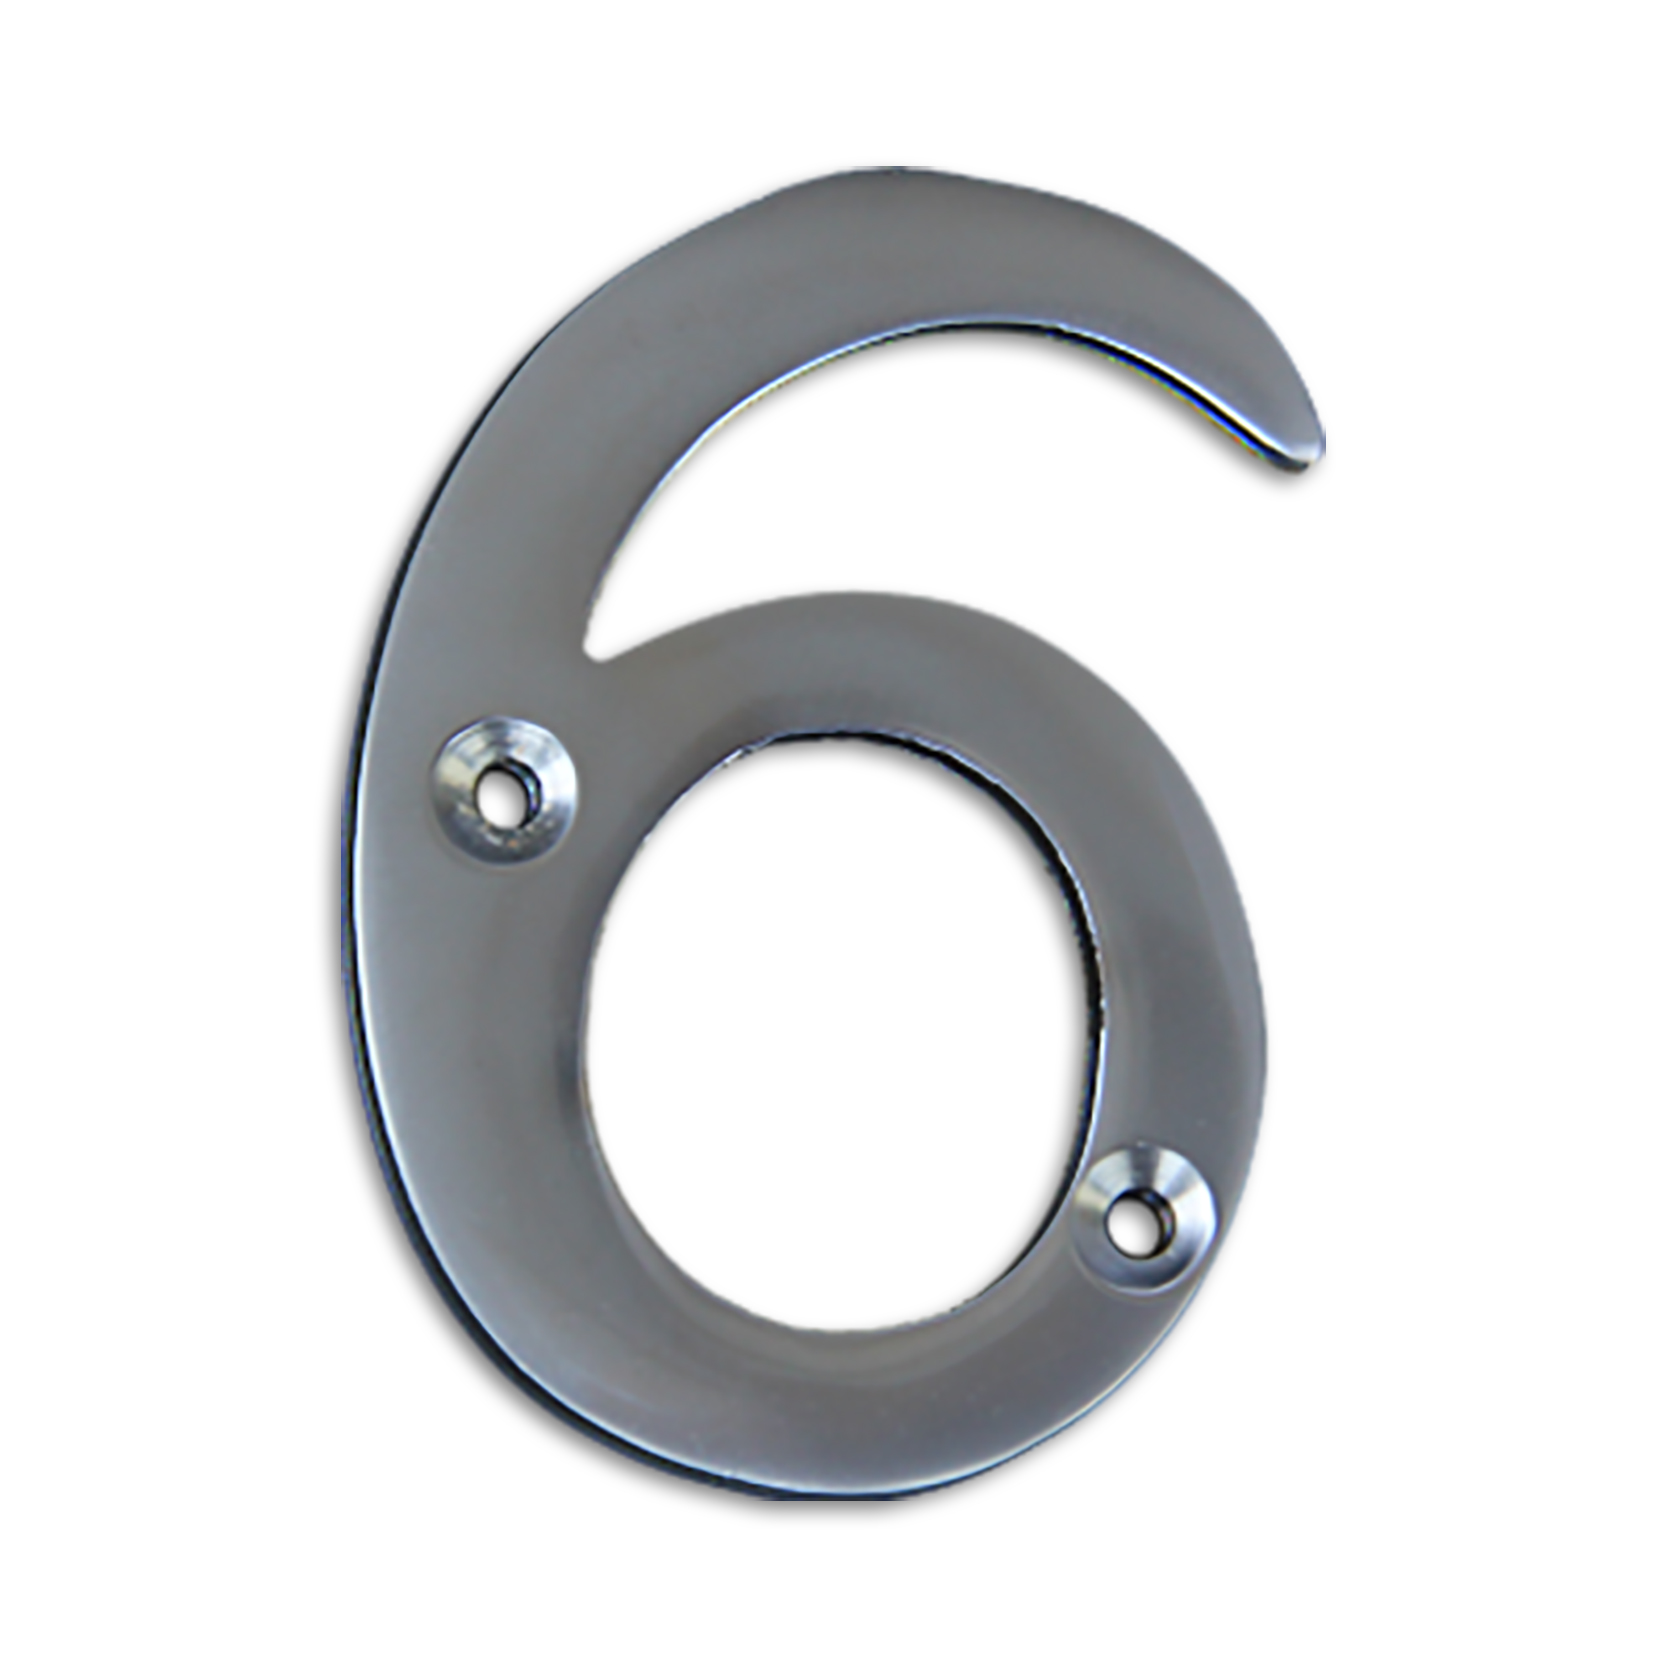 3-inch brass metal house number in satin chrome finish - metal number 6